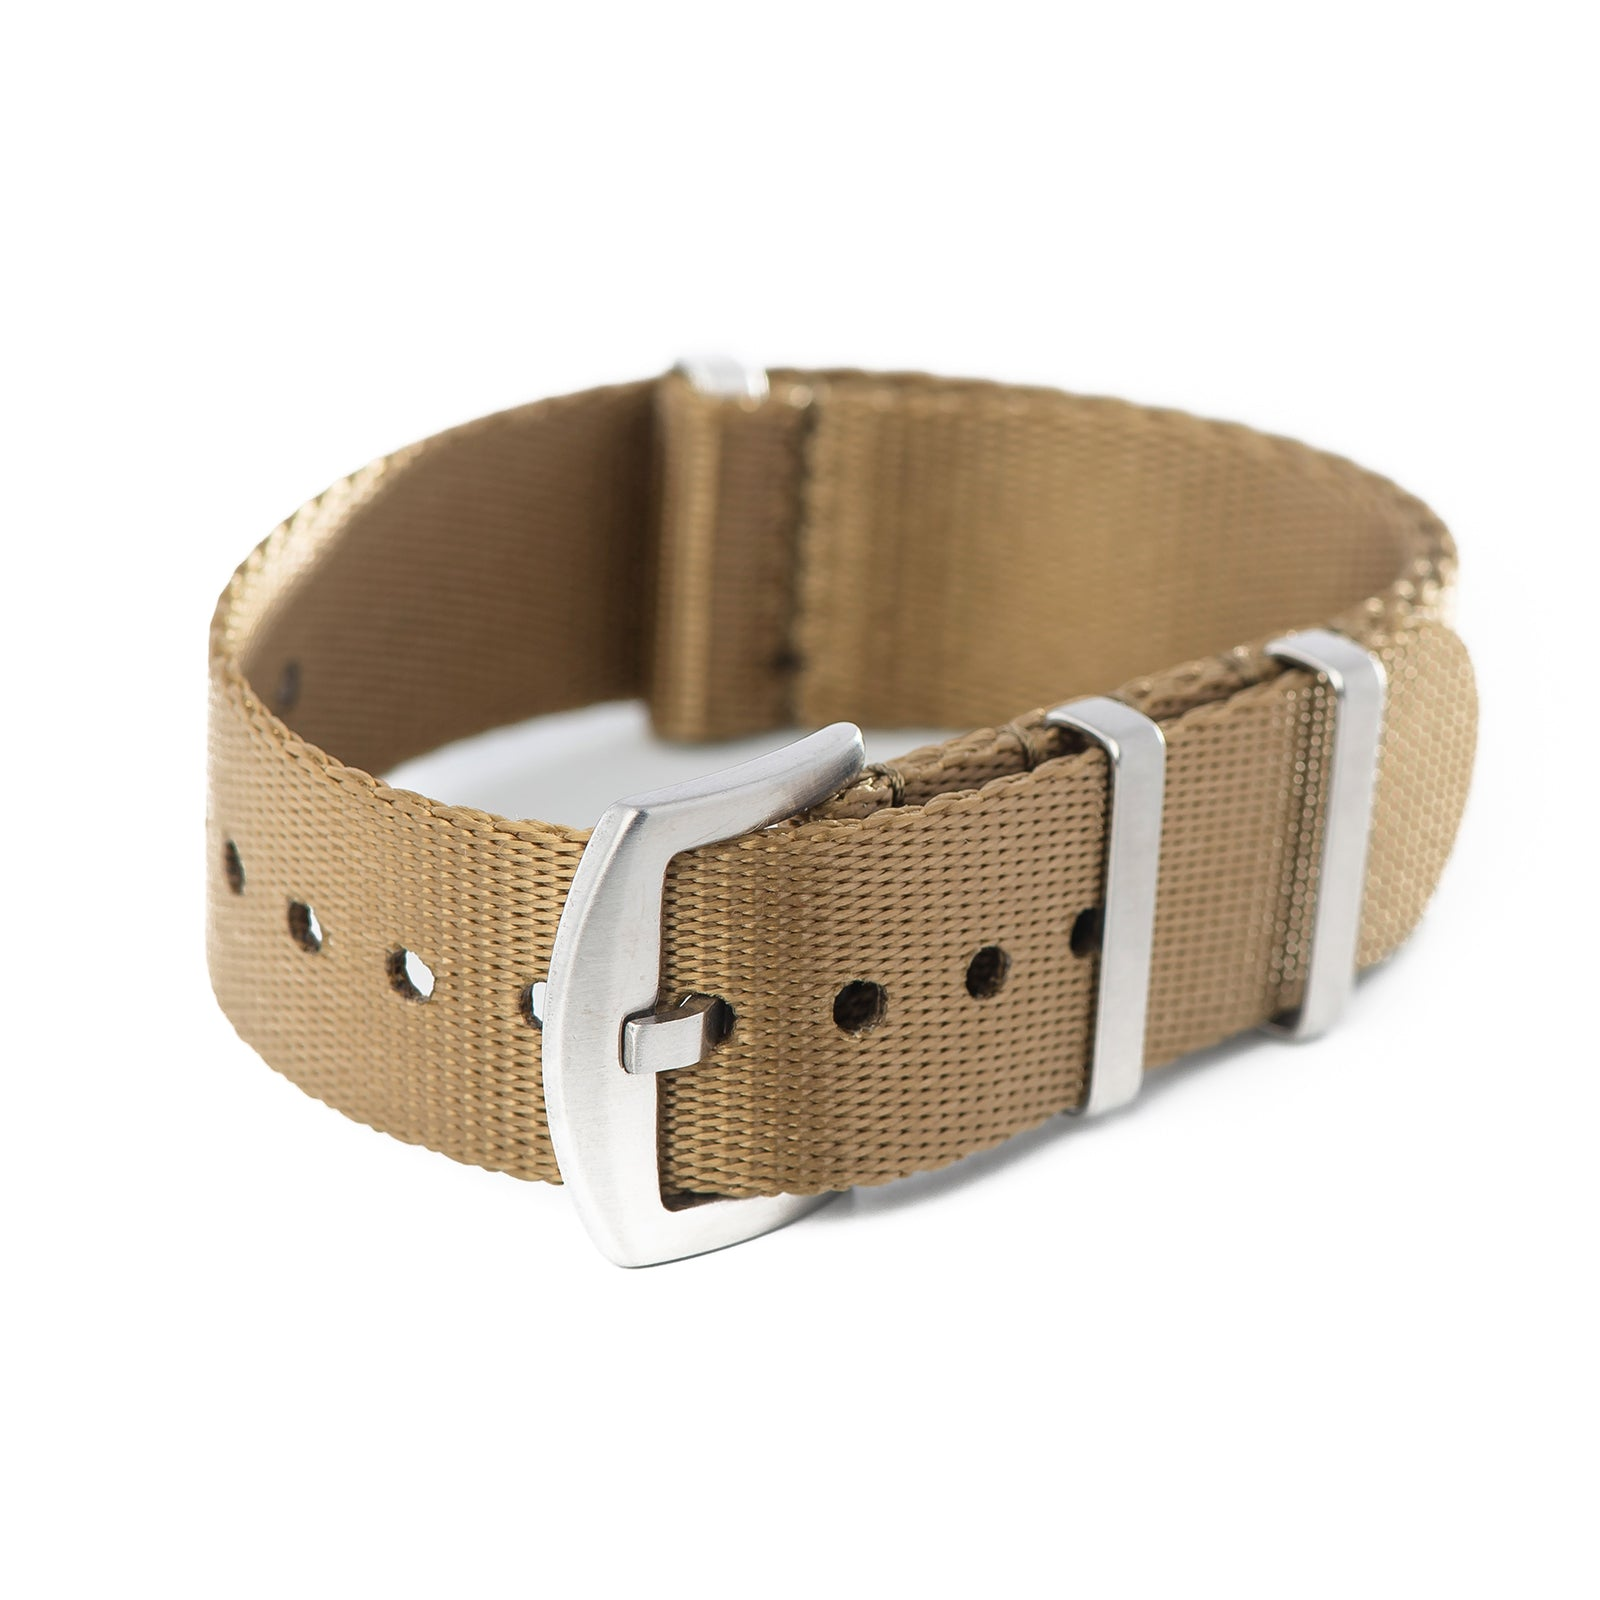 20mm 22mm Premium Seat Belt Nylon NATO Watch Strap - Khaki